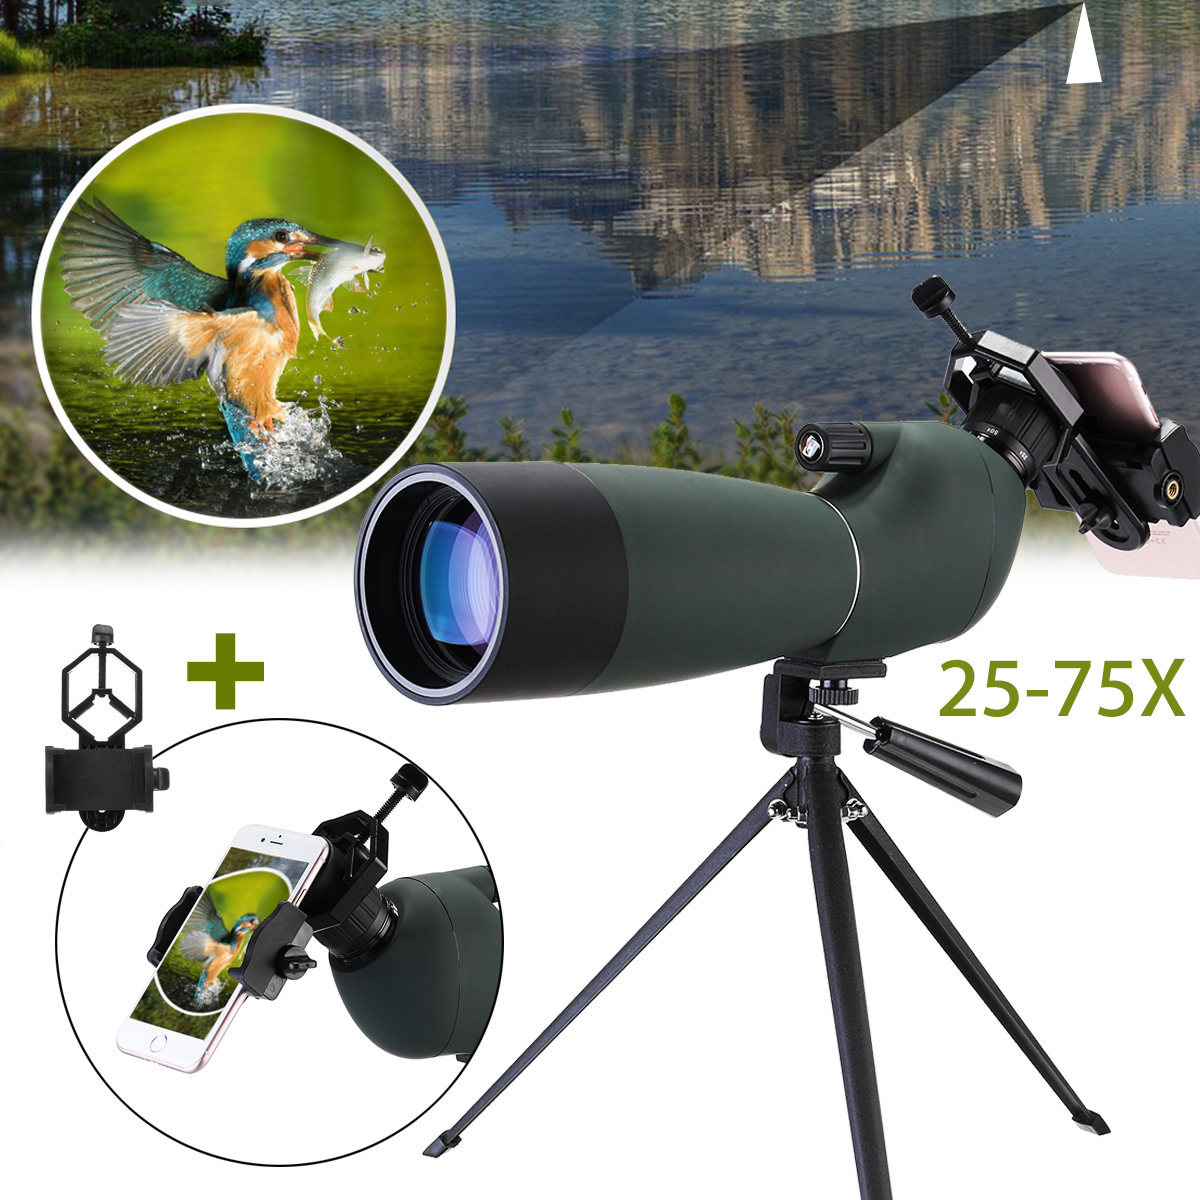 Spotting Scope BAK4 25-75x70 Zoom Monocular Telescope Waterproof Binoculars with Tripod Phone Holder for Birdwatch Hunting 15 45x60 spotting scope waterproof telescope 60mm 15 45x zoom birdwatch long range hunting monocular with tripod mount page 1